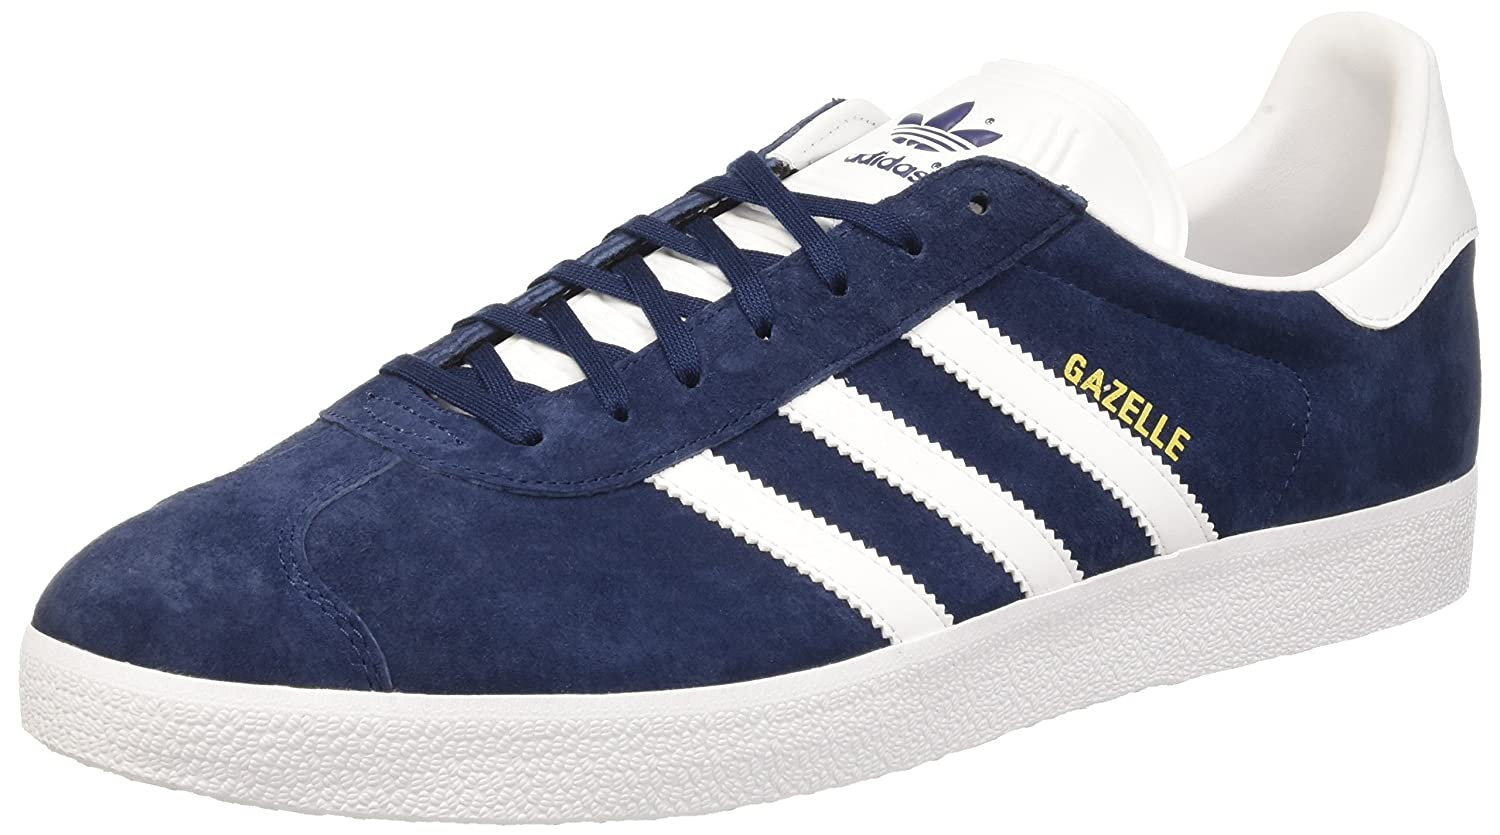 416b07bcdebd64 adidas gazelle blue navy Sale